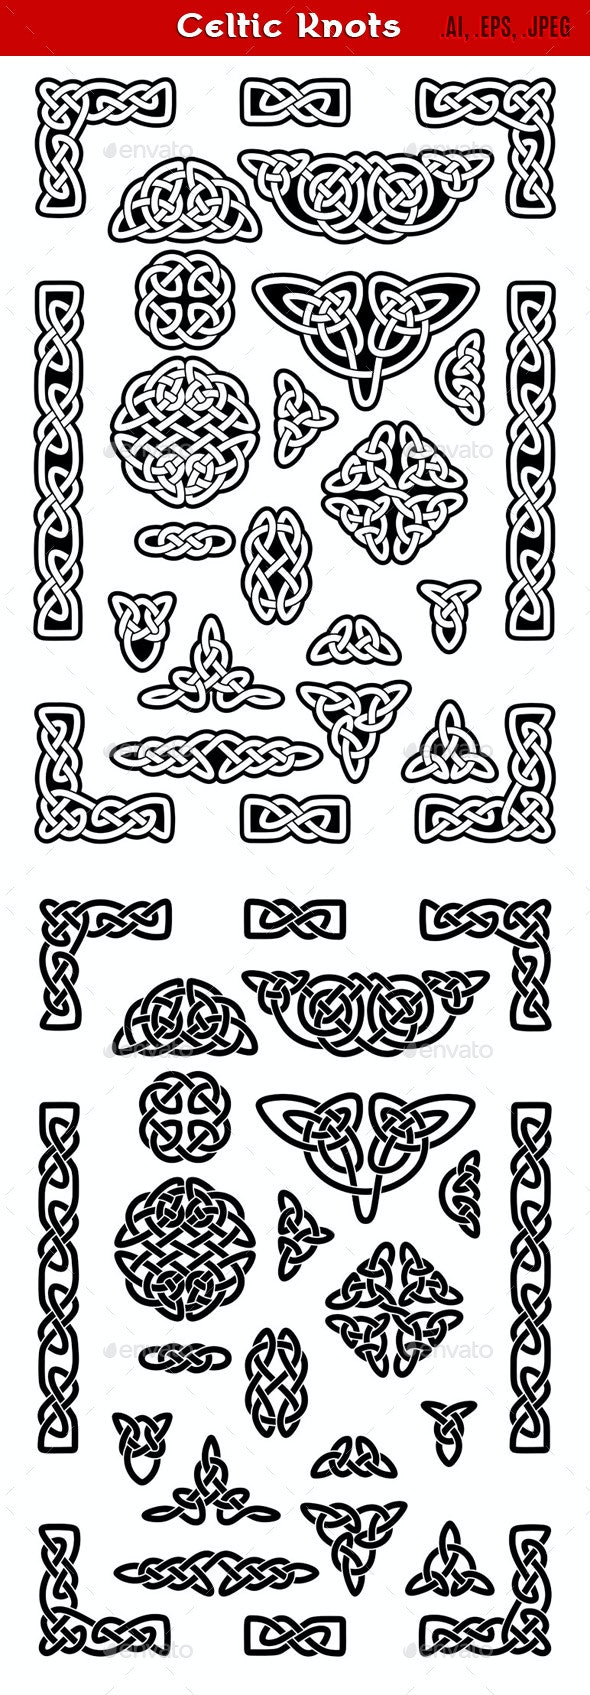 Celtic Knots - Decorative Symbols Decorative